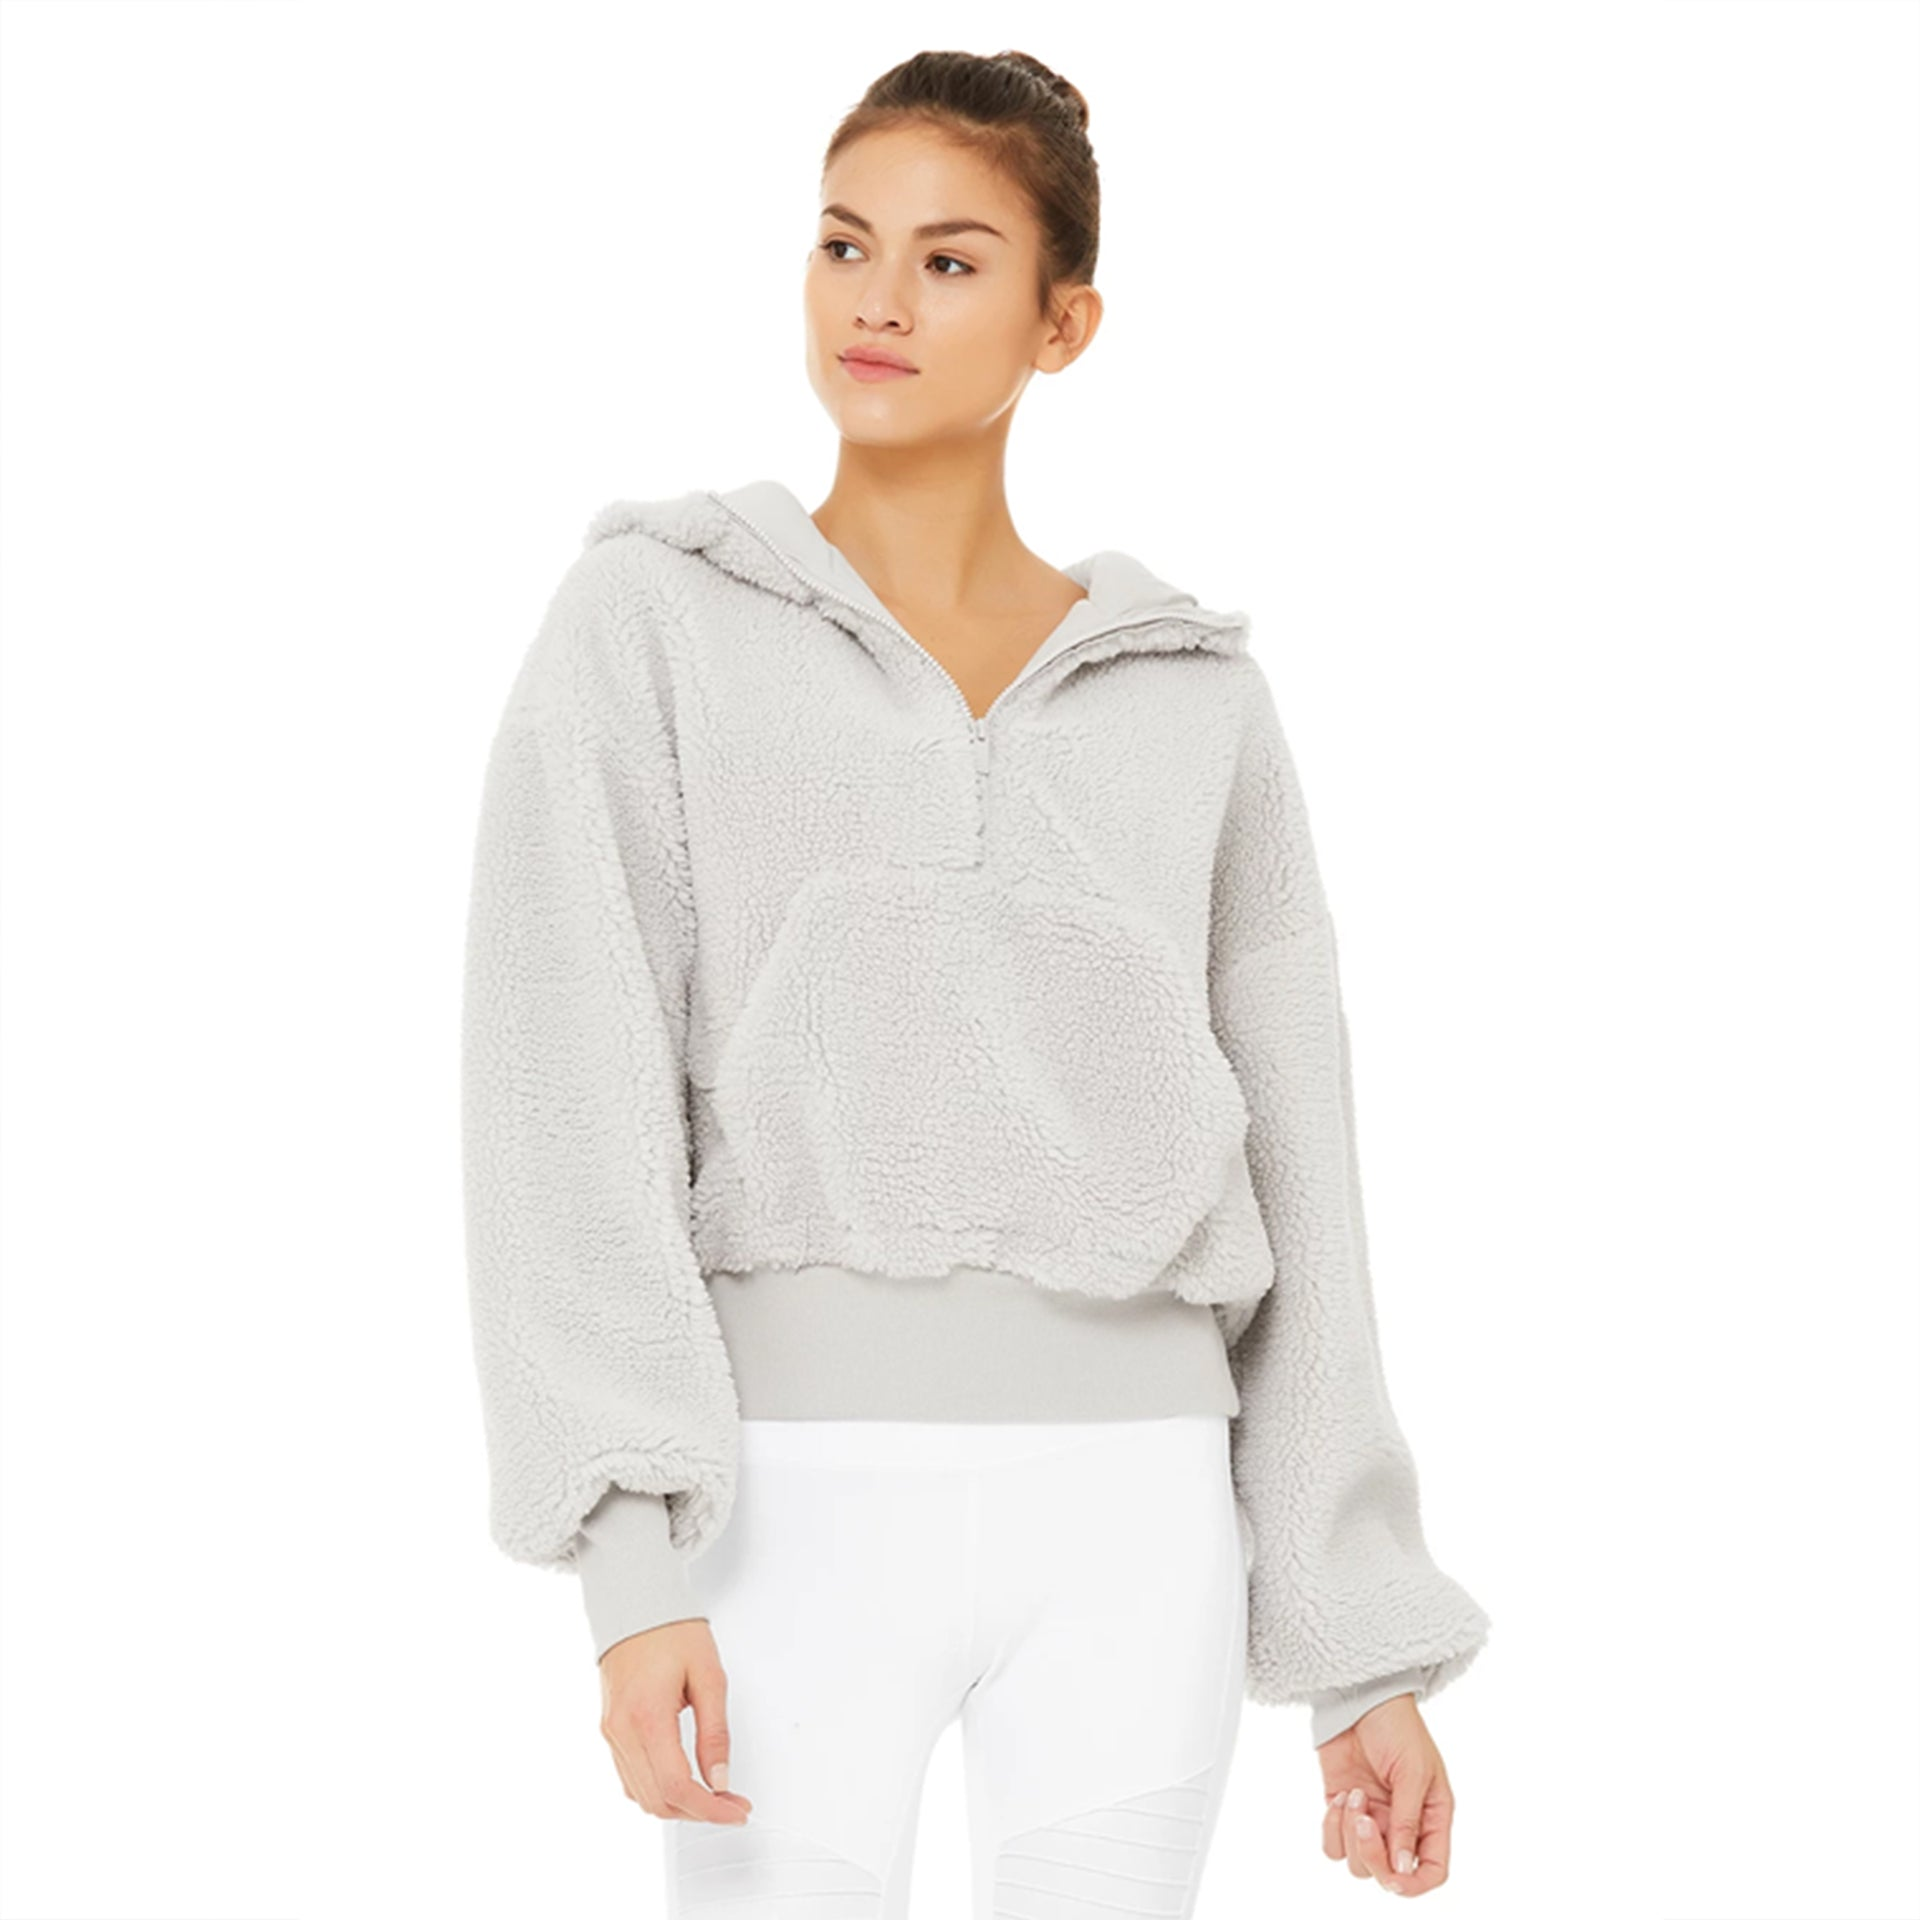 Alo Yoga Streetside Half Zip Hoodie in Dove Grey SOLD OUT